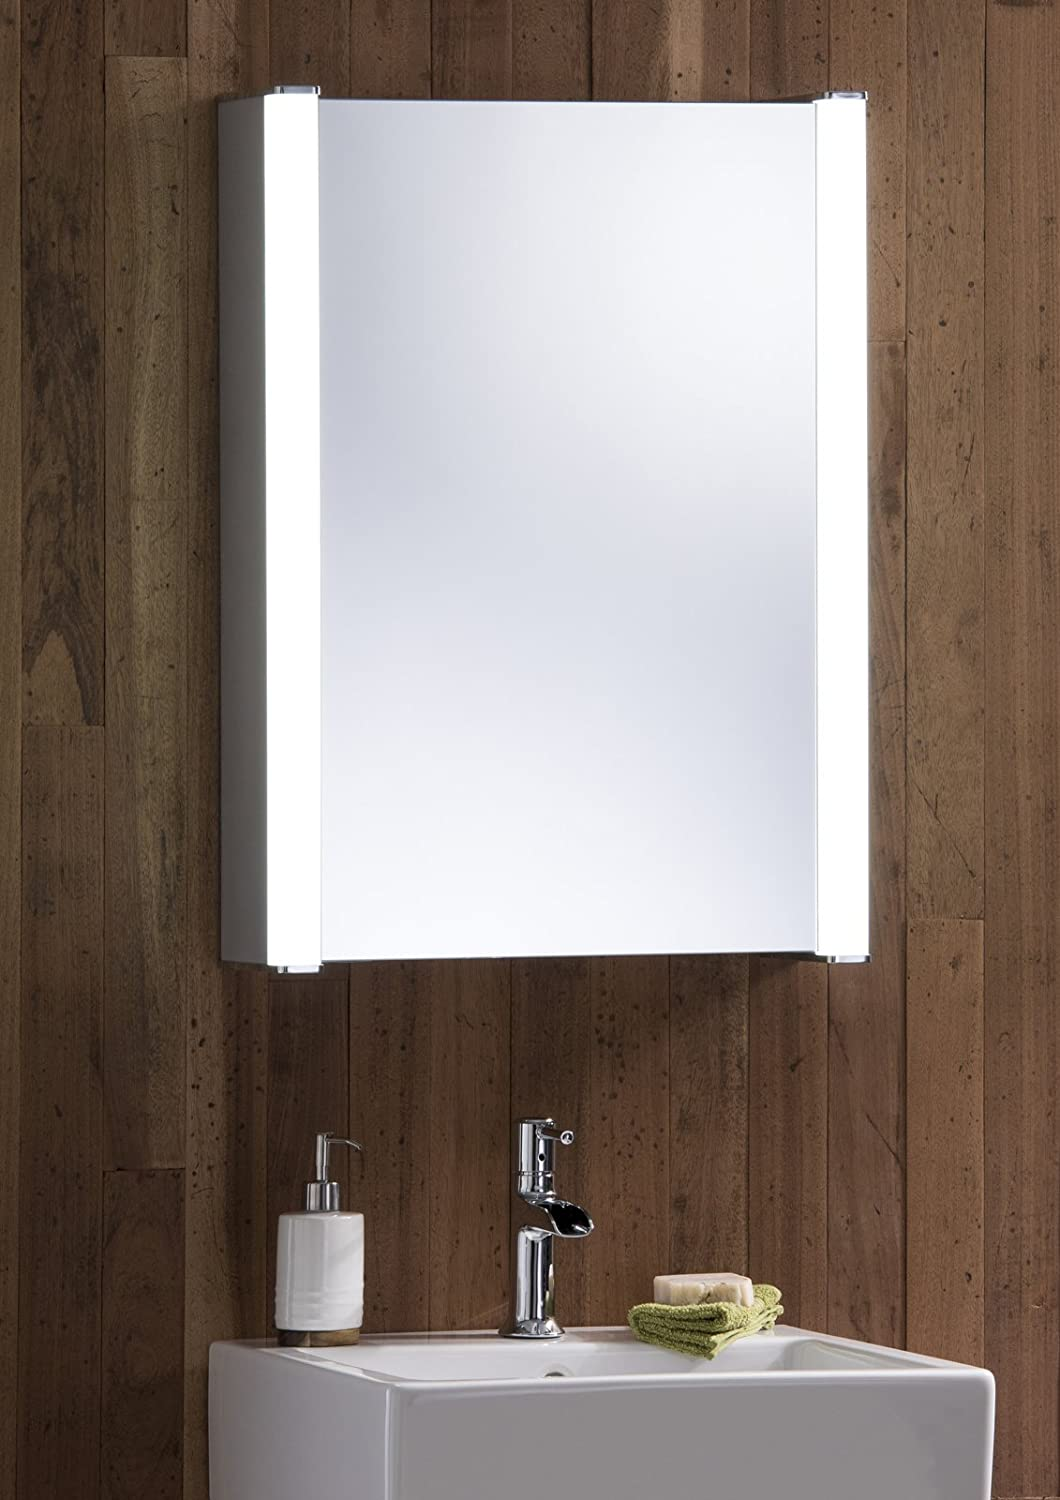 Bathroom mirror cabinets with light and shaver socket - Led Illuminated Bathroom Mirror Cabinet With Demister Heat Pad Shaver And Sensor Switch With Lights 70cm H X 50cm W X 16cm D C11 Amazon Co Uk Kitchen